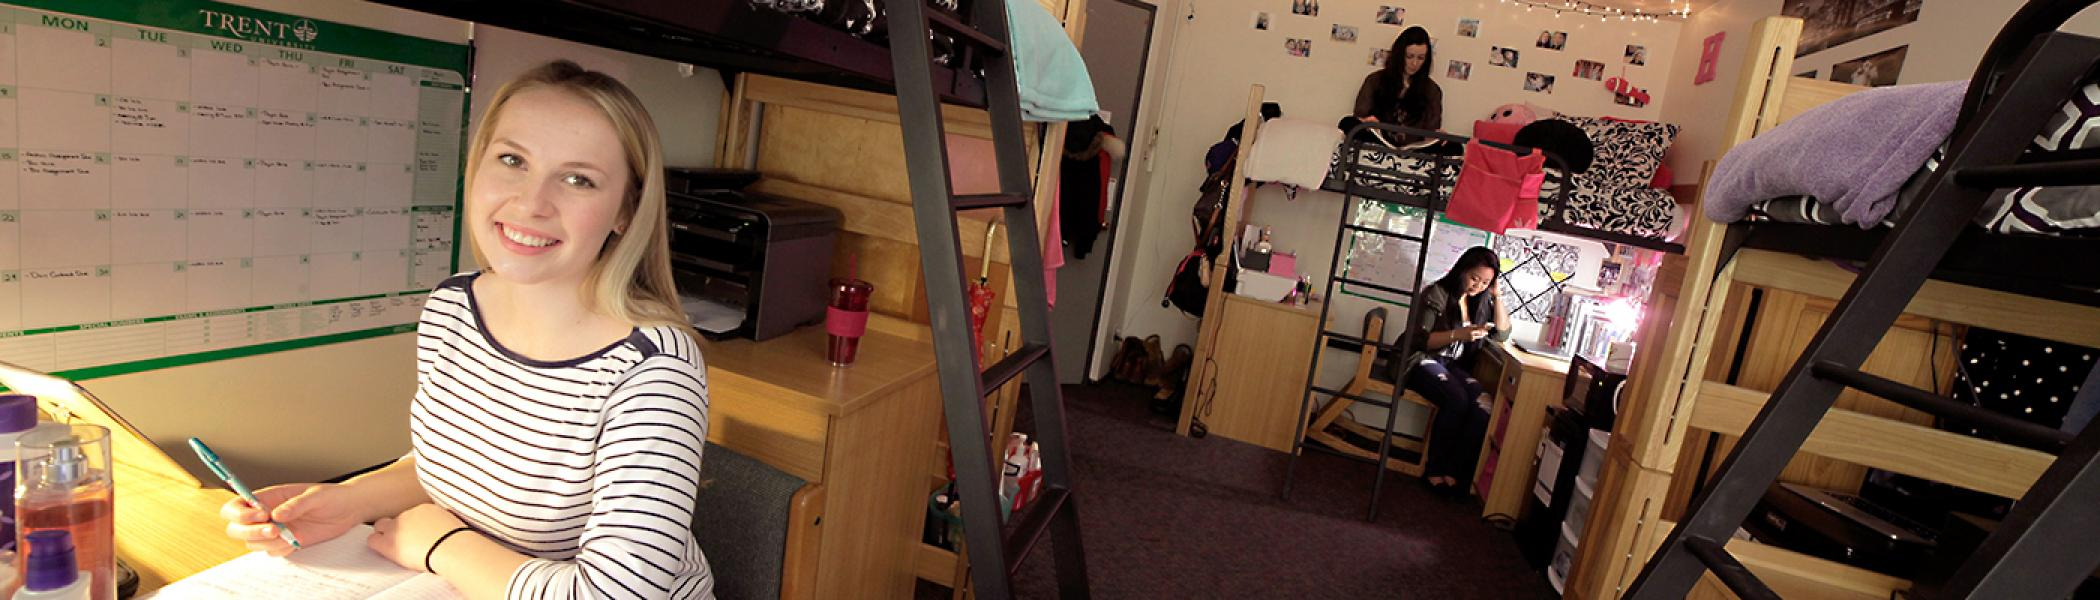 Student studying in her Otonabee college dorm room